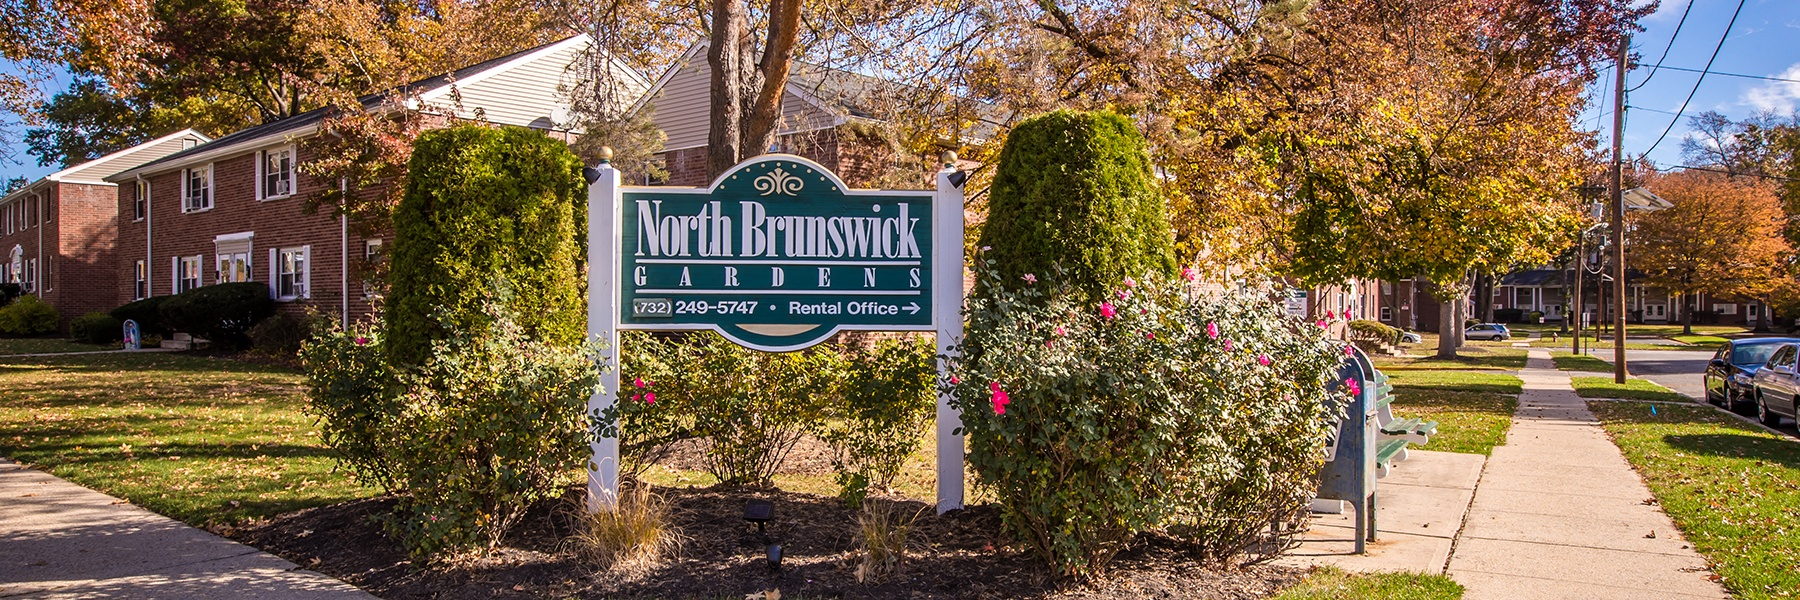 North Brunswick Gardens Apartments For Rent in North Brunswick, NJ Welcome